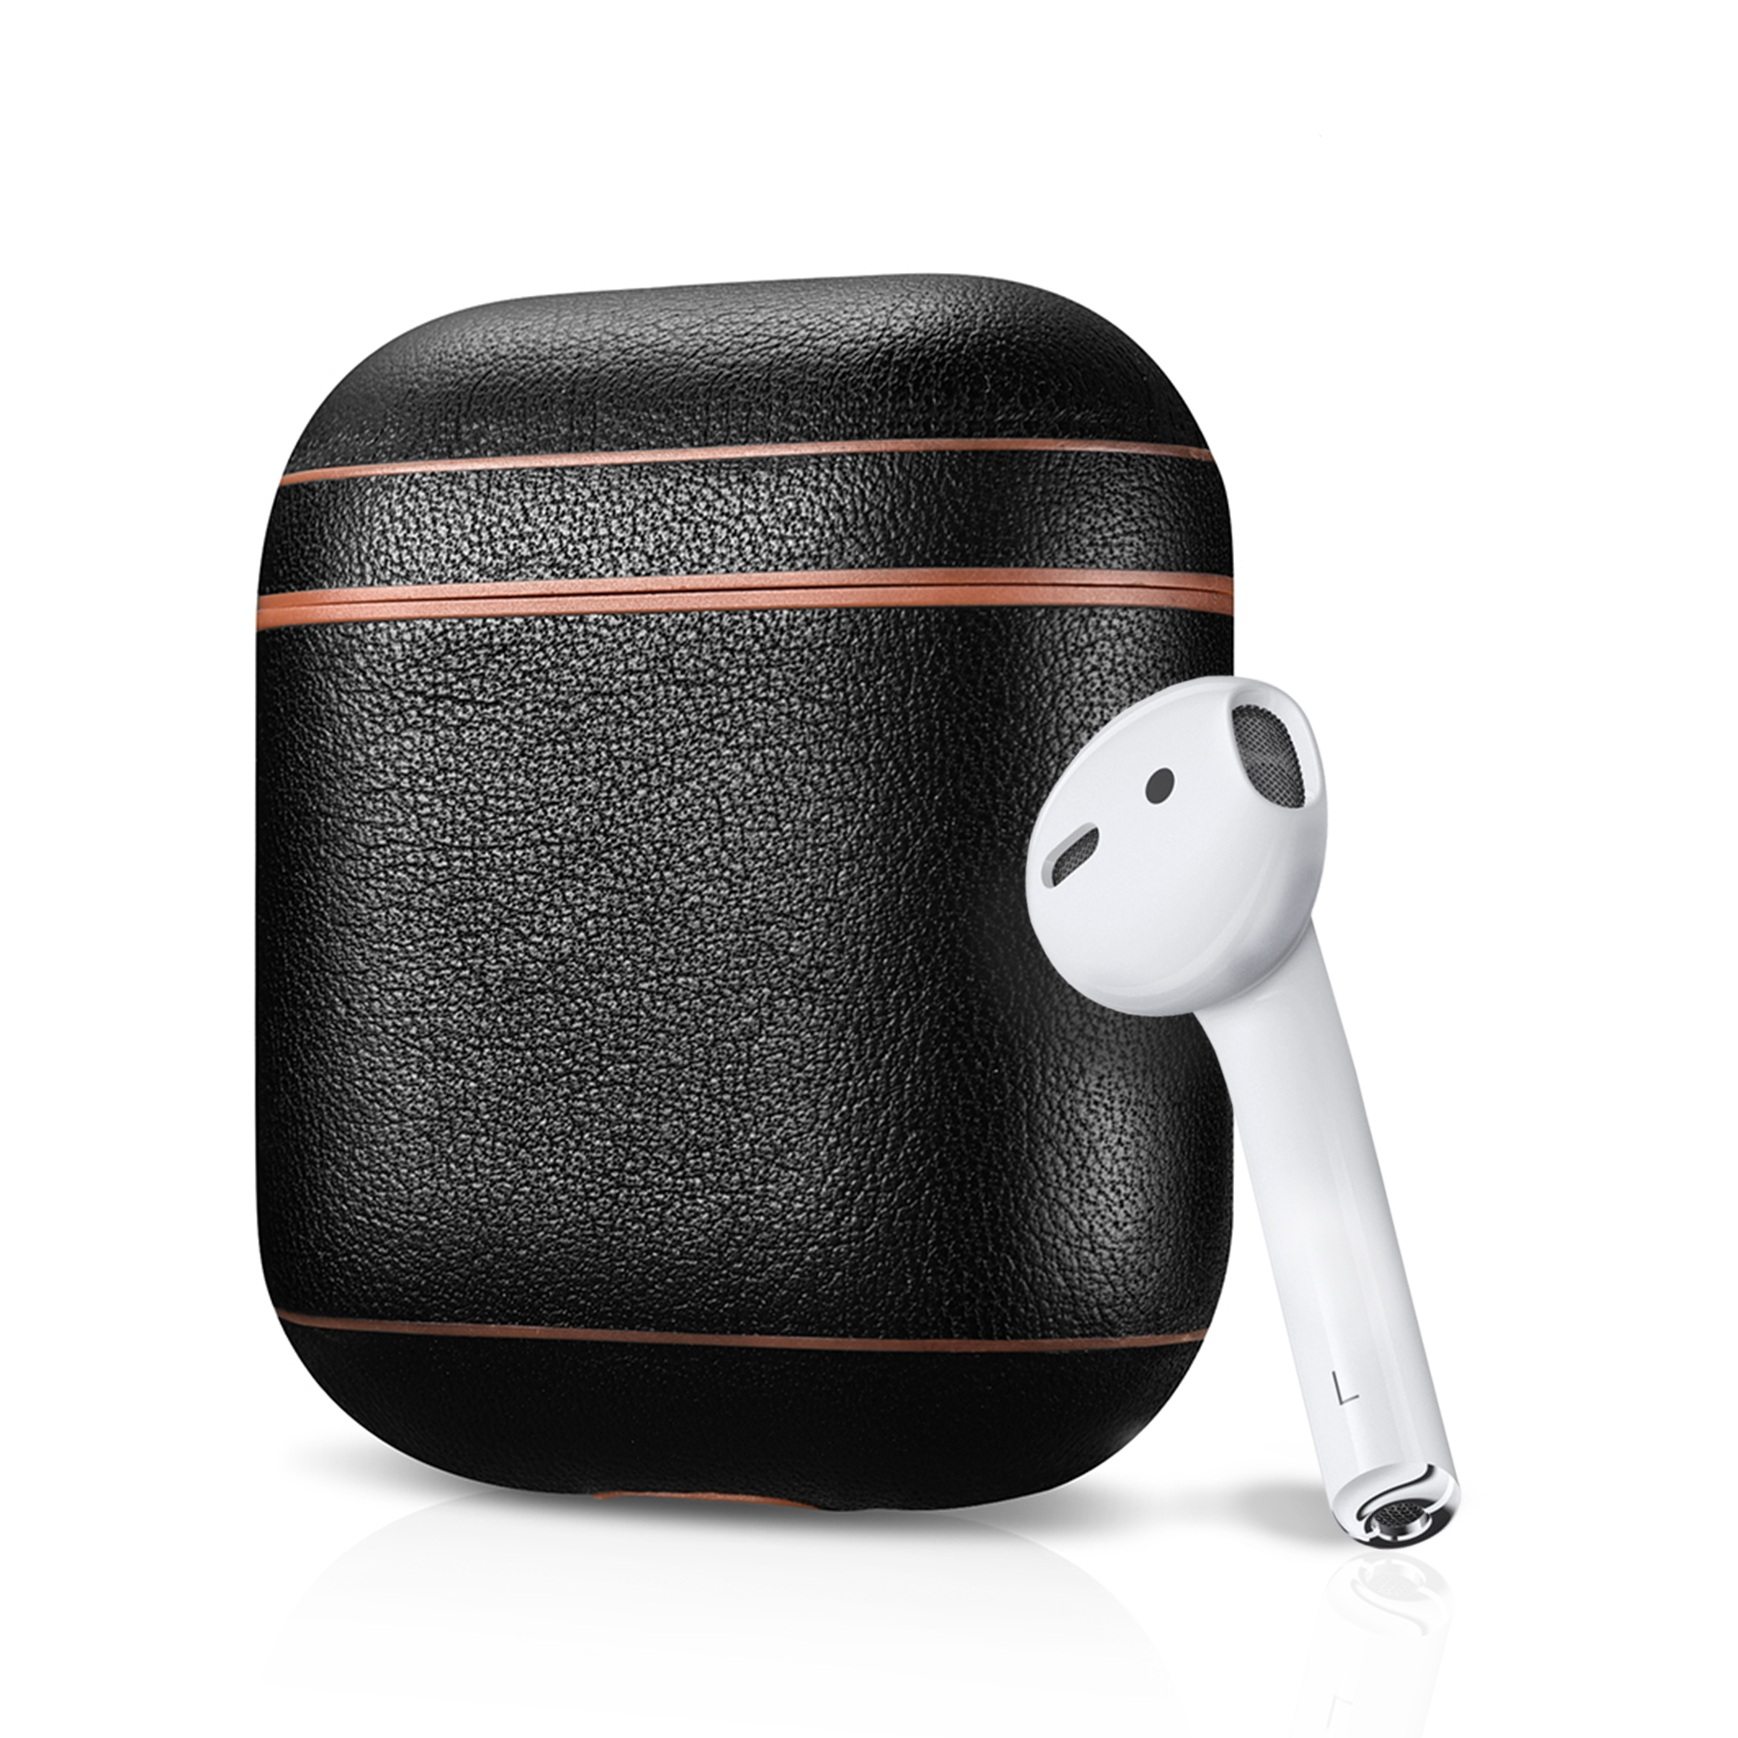 Leather Cases - The Original Leather Case for AirPods